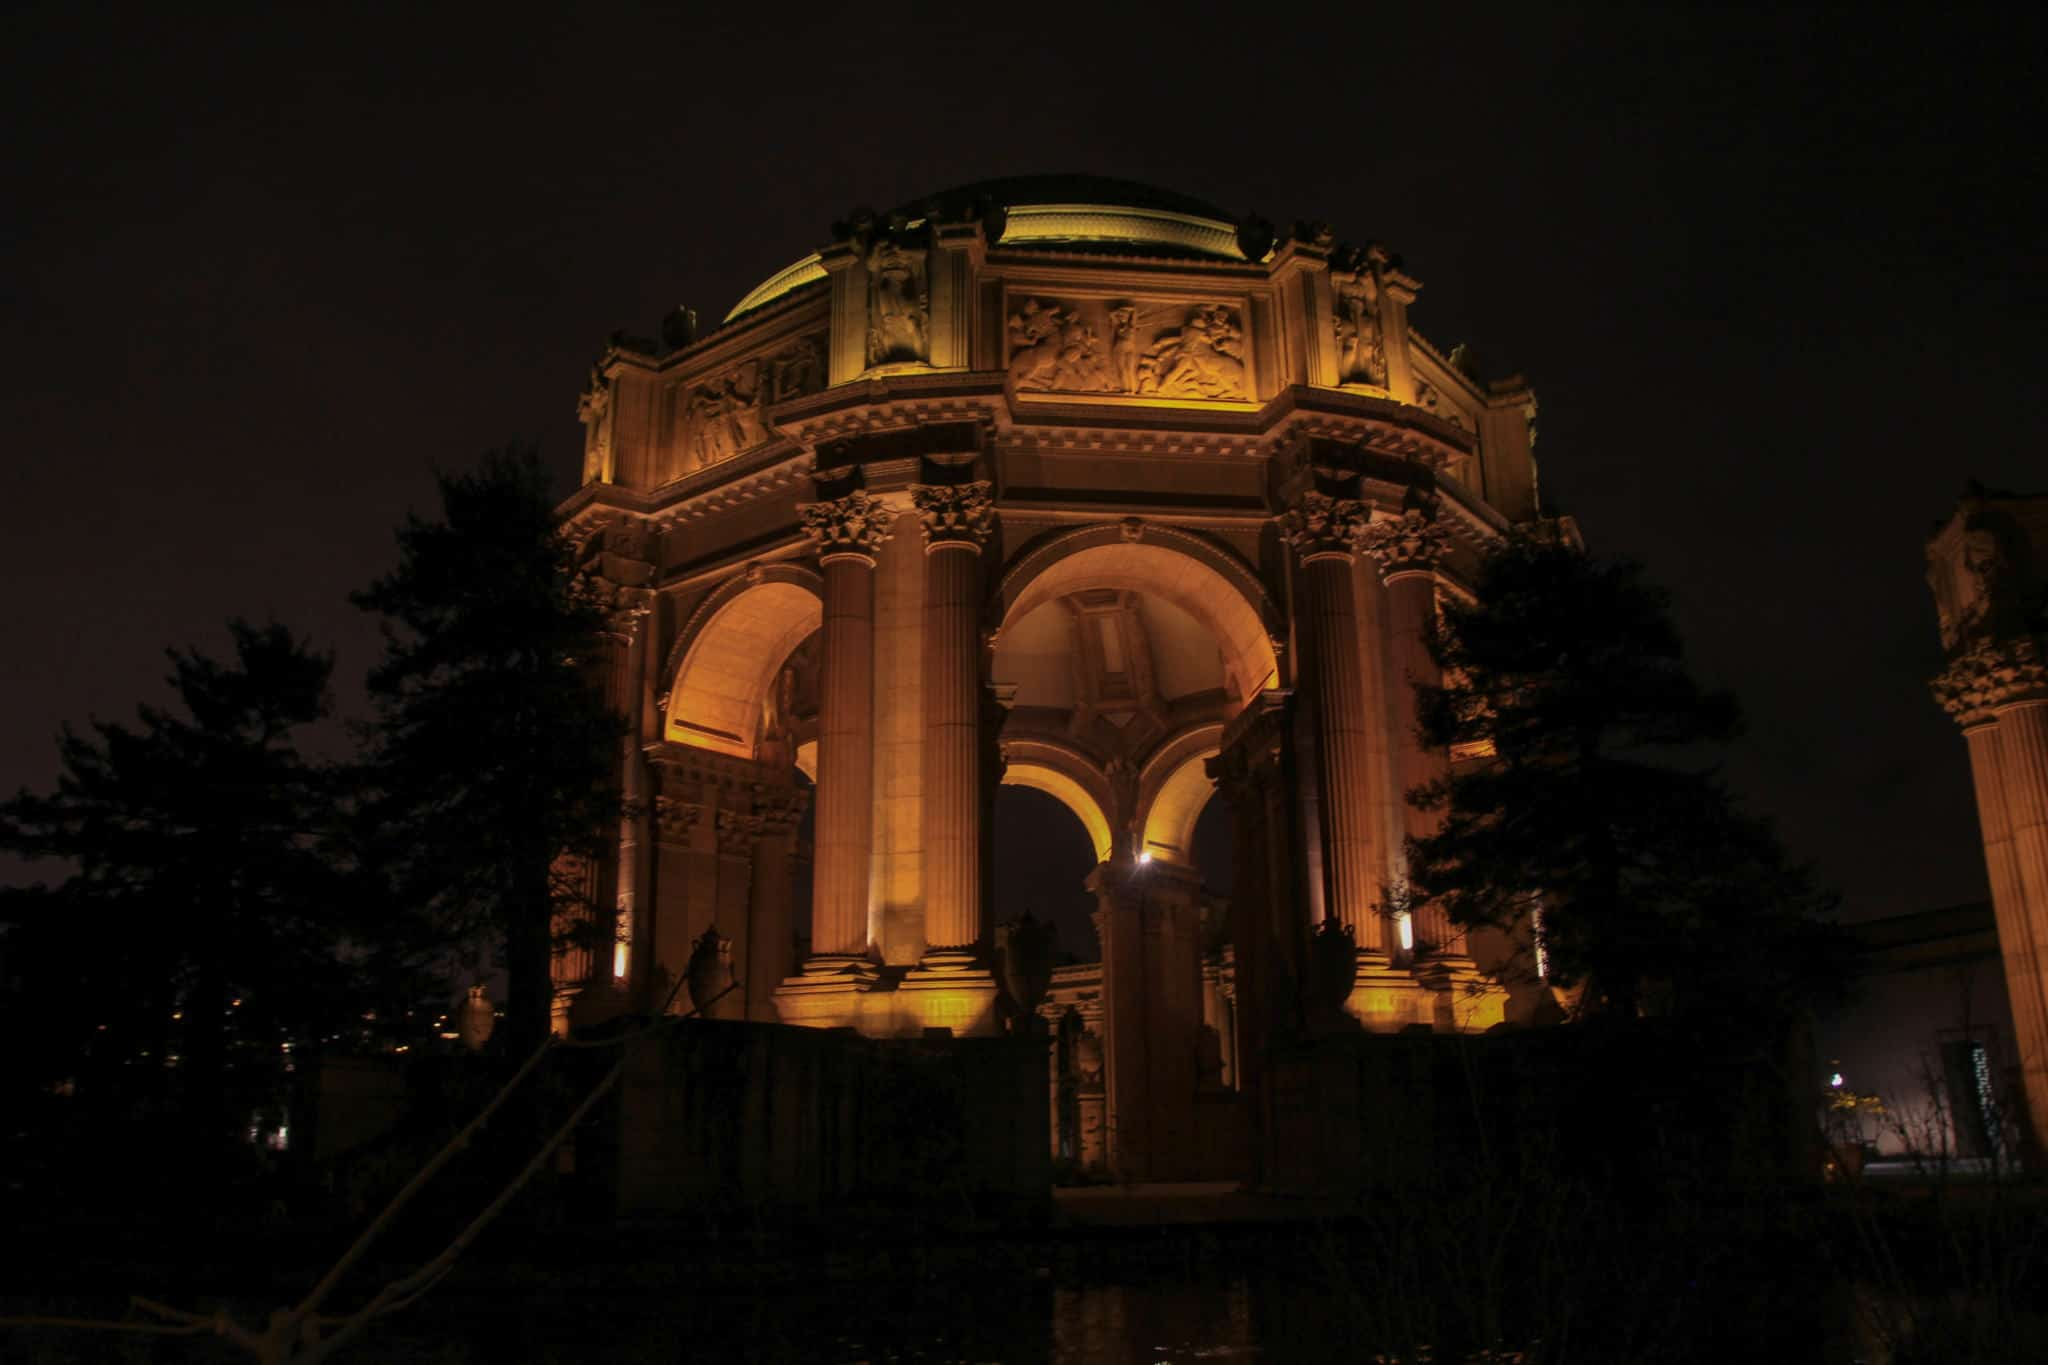 Museum of Fine Arts at night is a must while spending 2 days in San Francisco